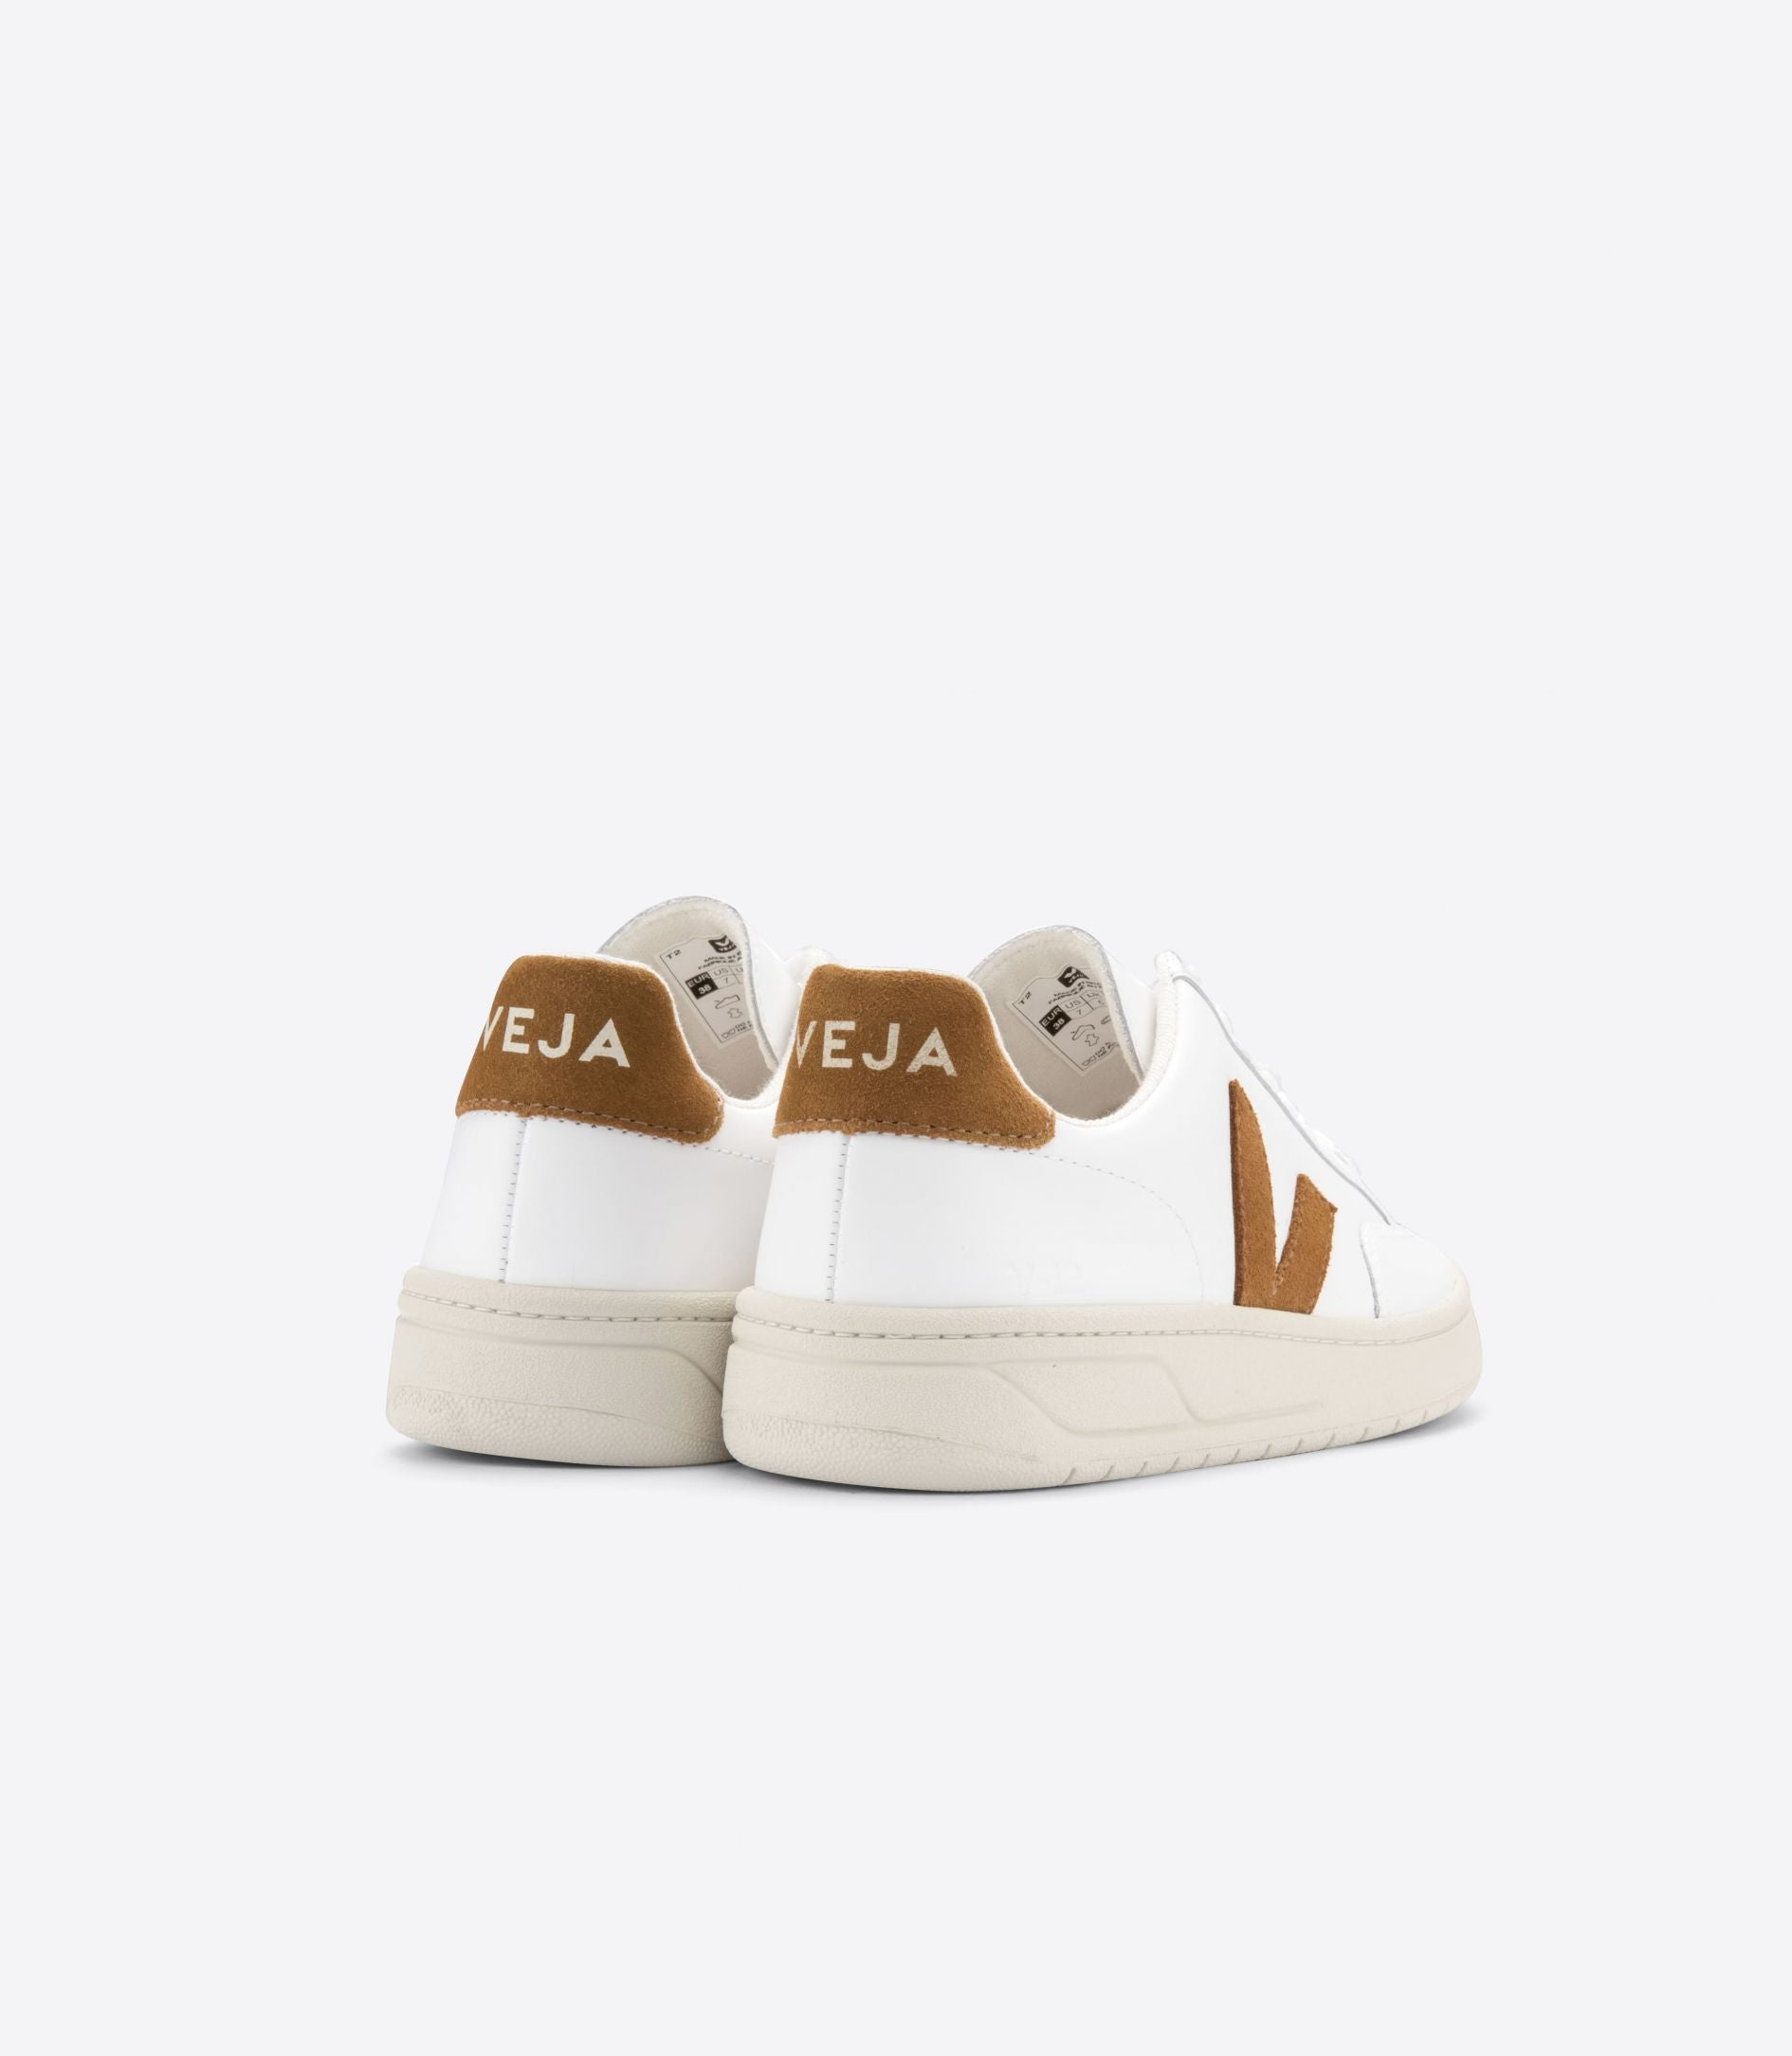 DEPORTIVAS Veja V-12 LEATHER EXTRA WHITE CAMEL